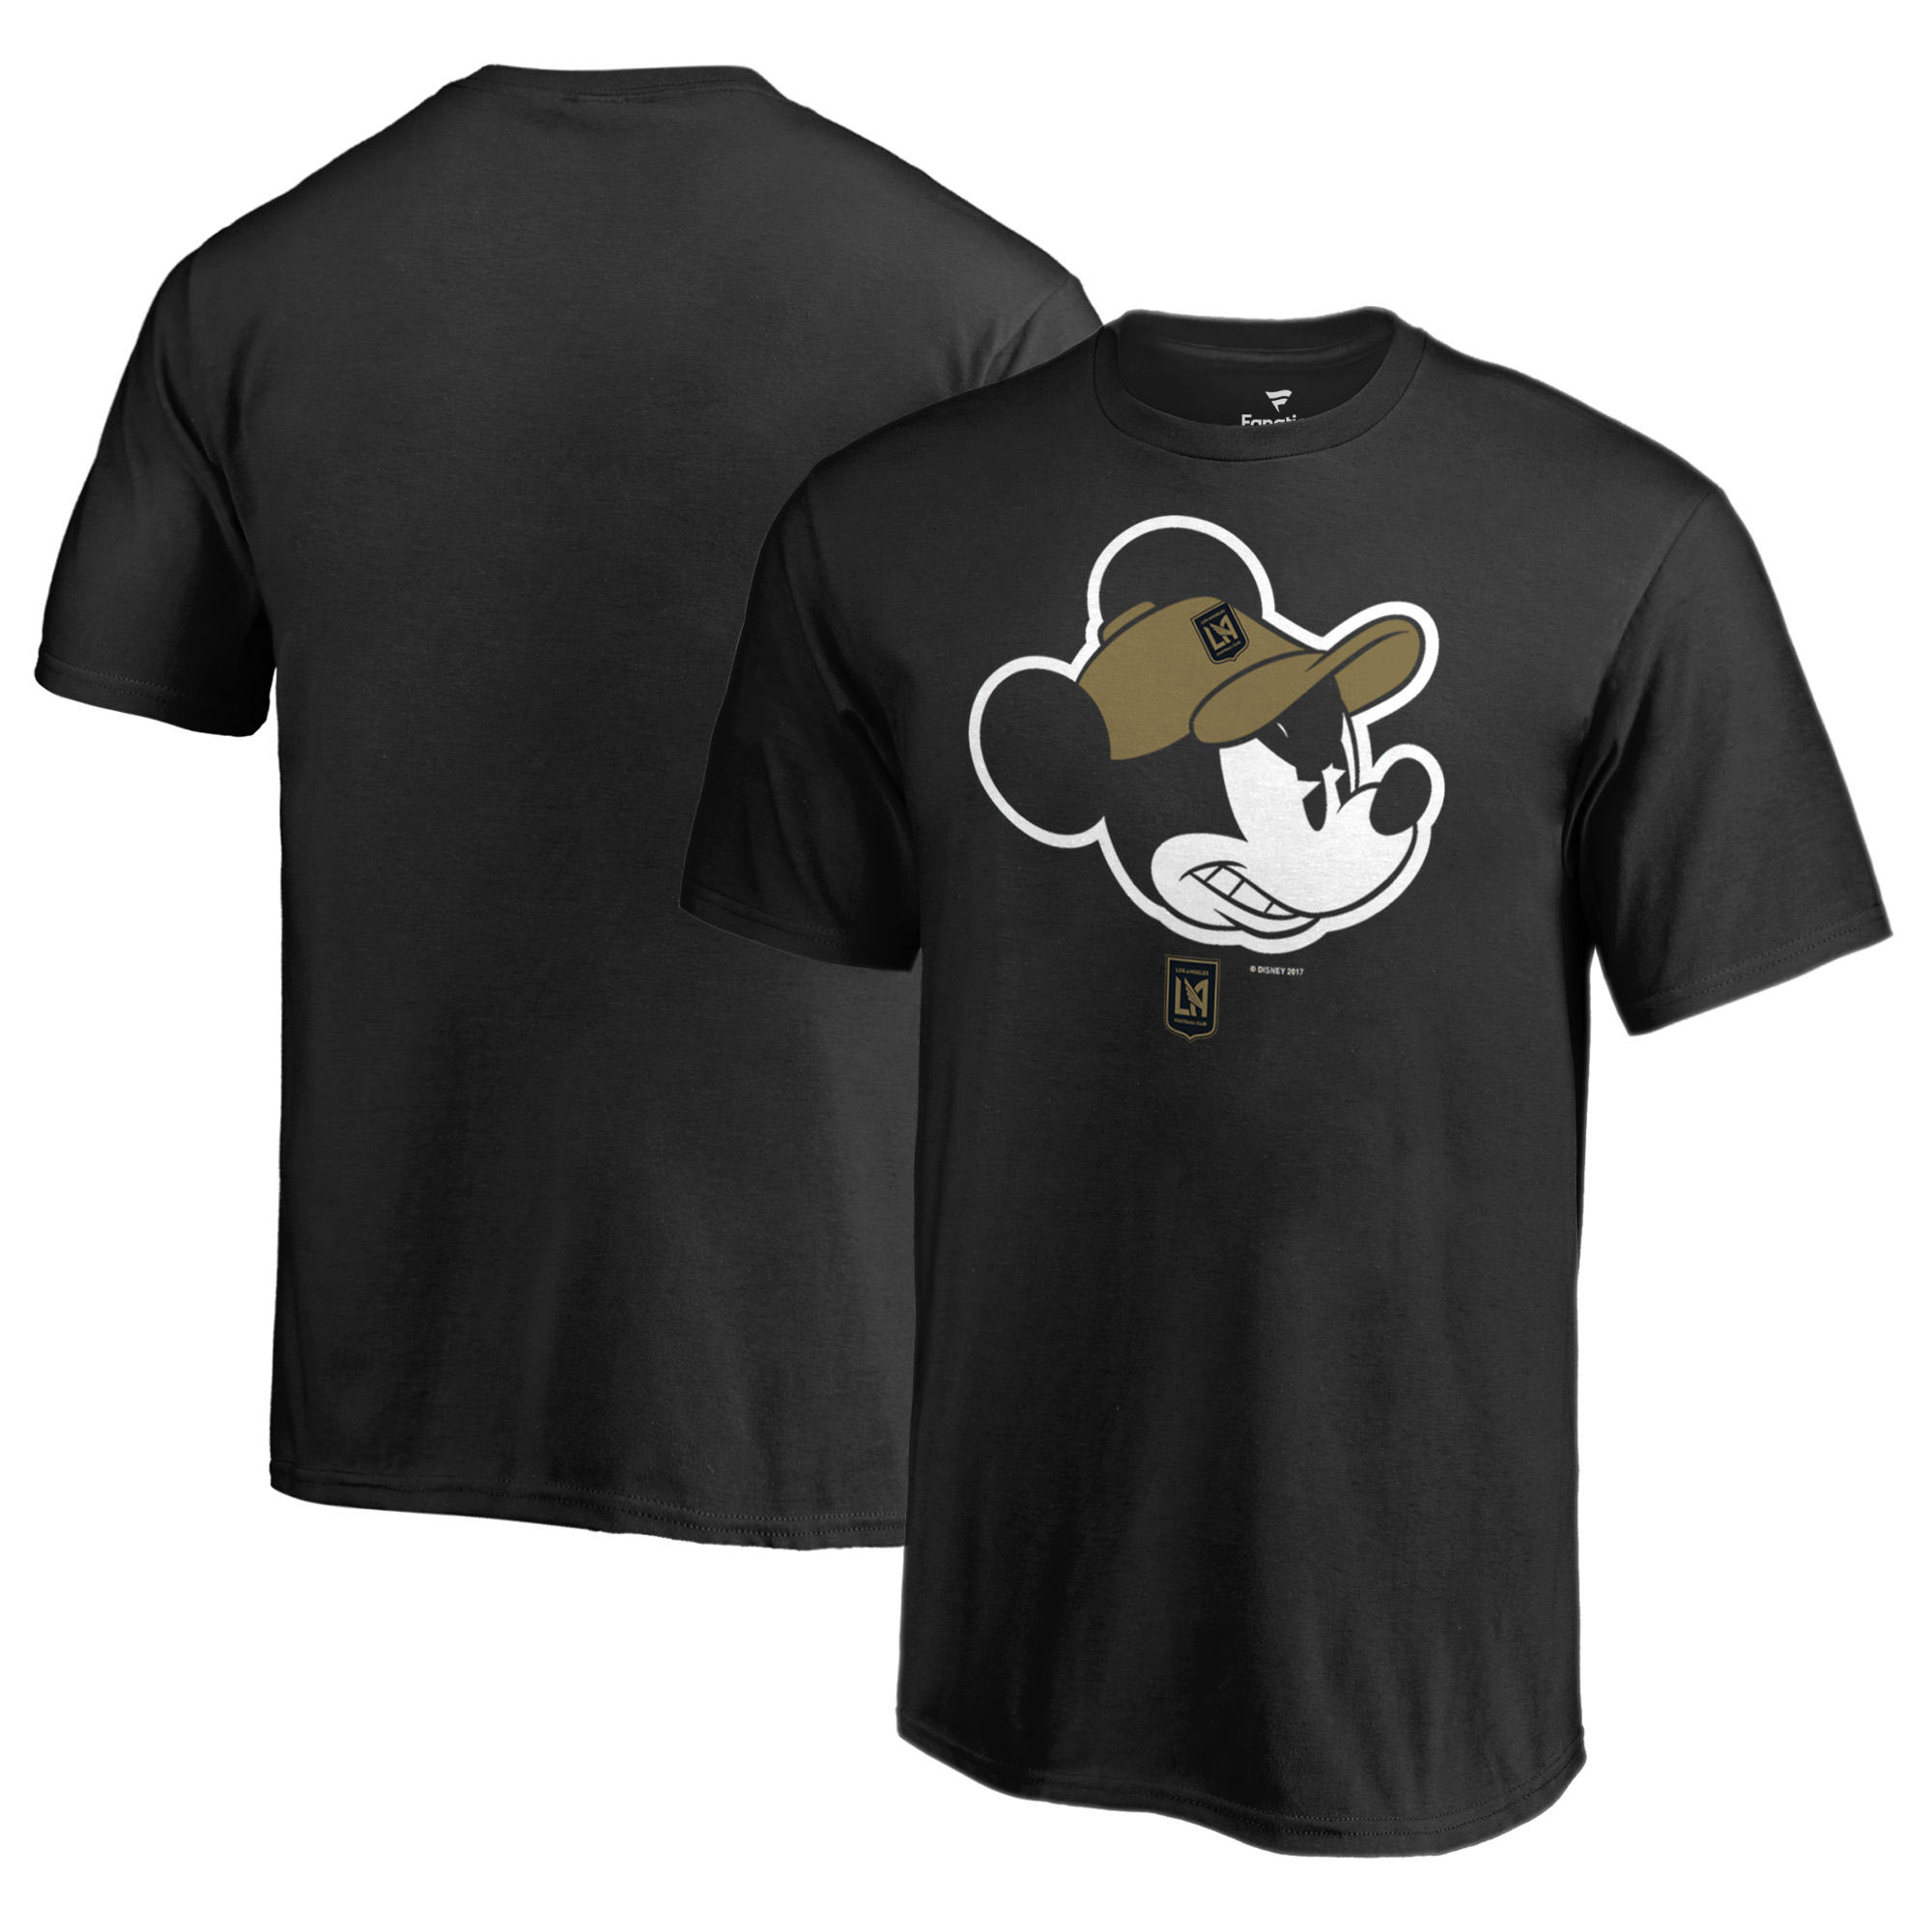 LAFC Fanatics Branded Youth Disney Game Face T-Shirt - Black